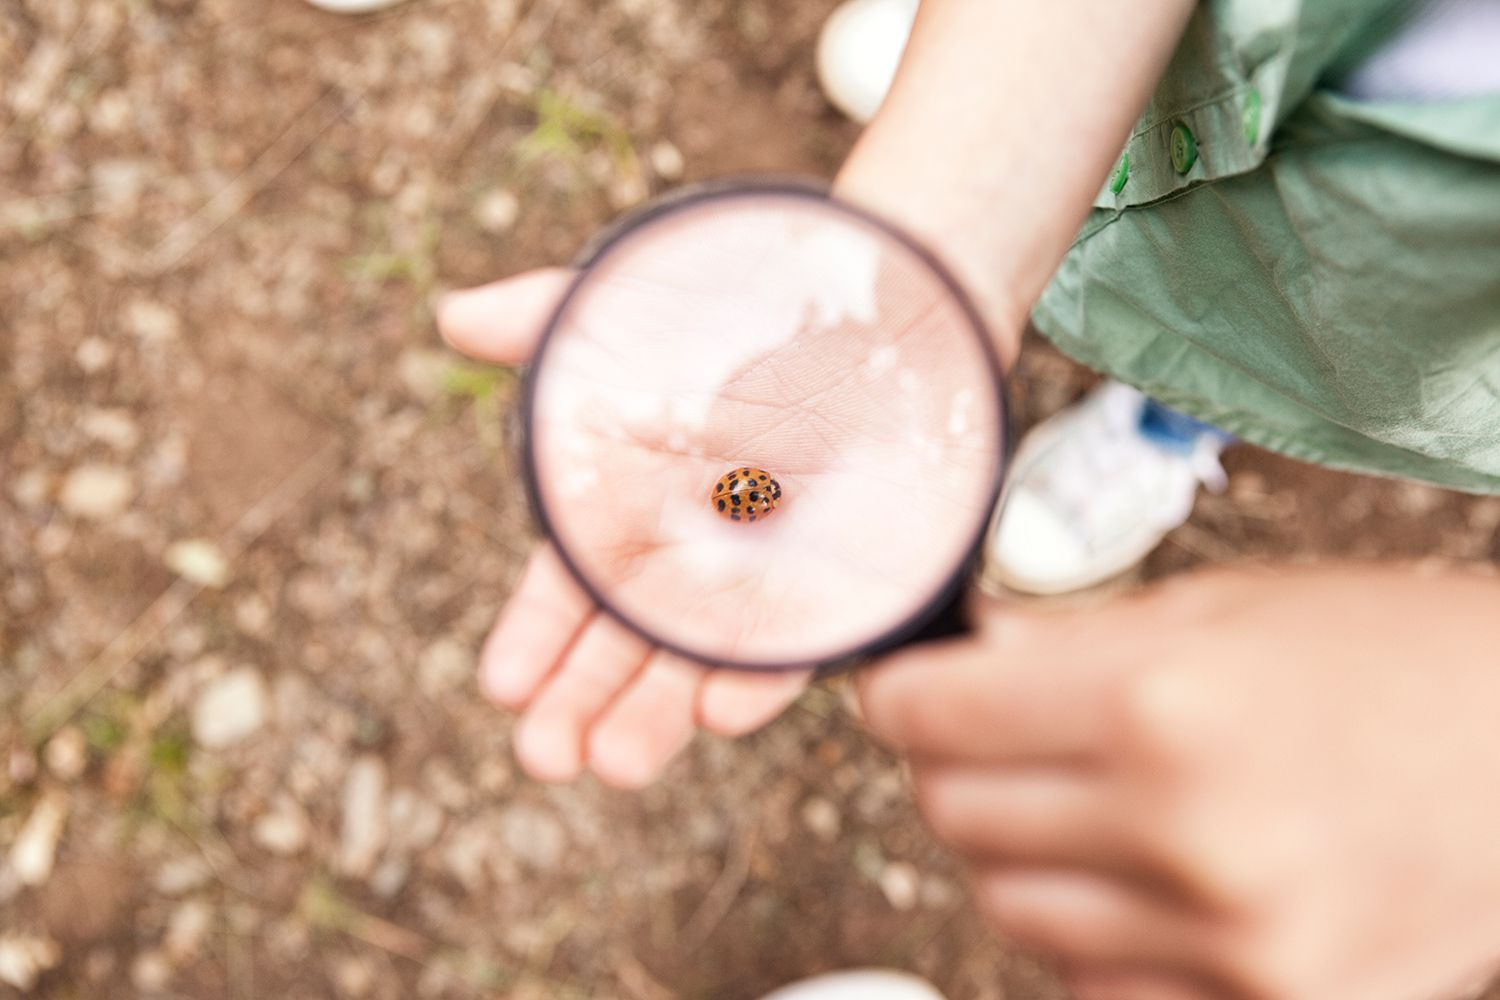 Ladybird on girl's hand under magnifying glass